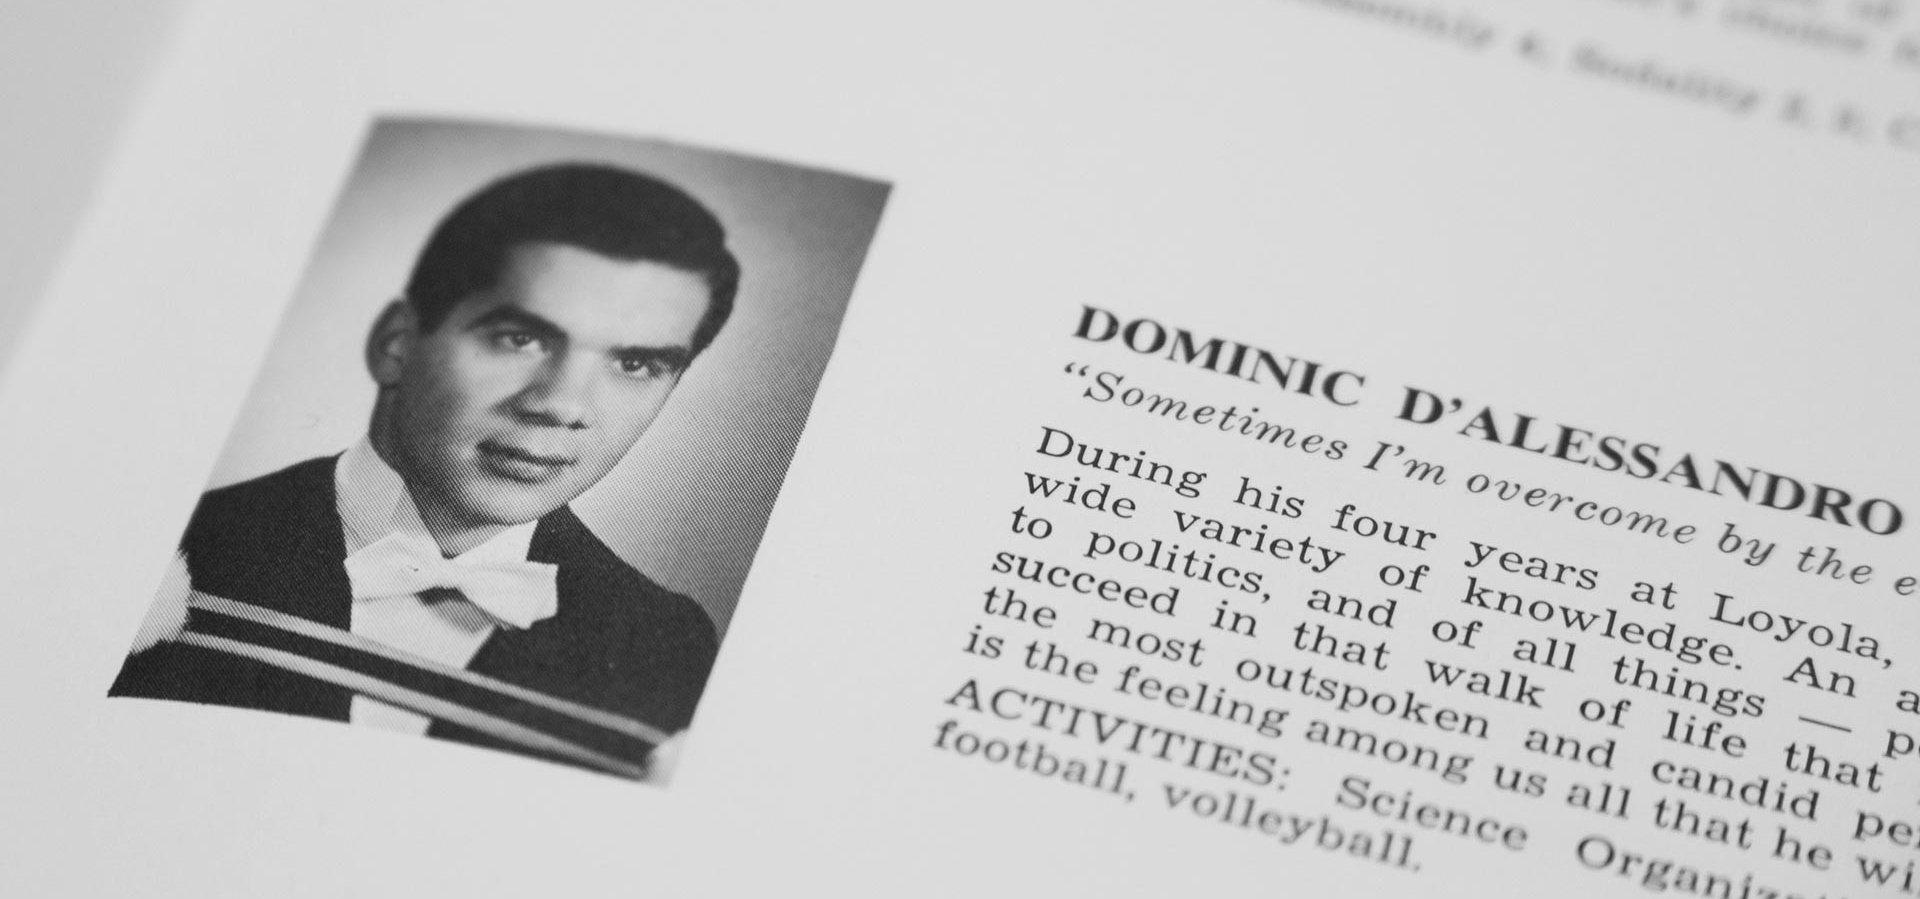 Dominic D'Alessandro's 1967 Loyola College yearbook photo.